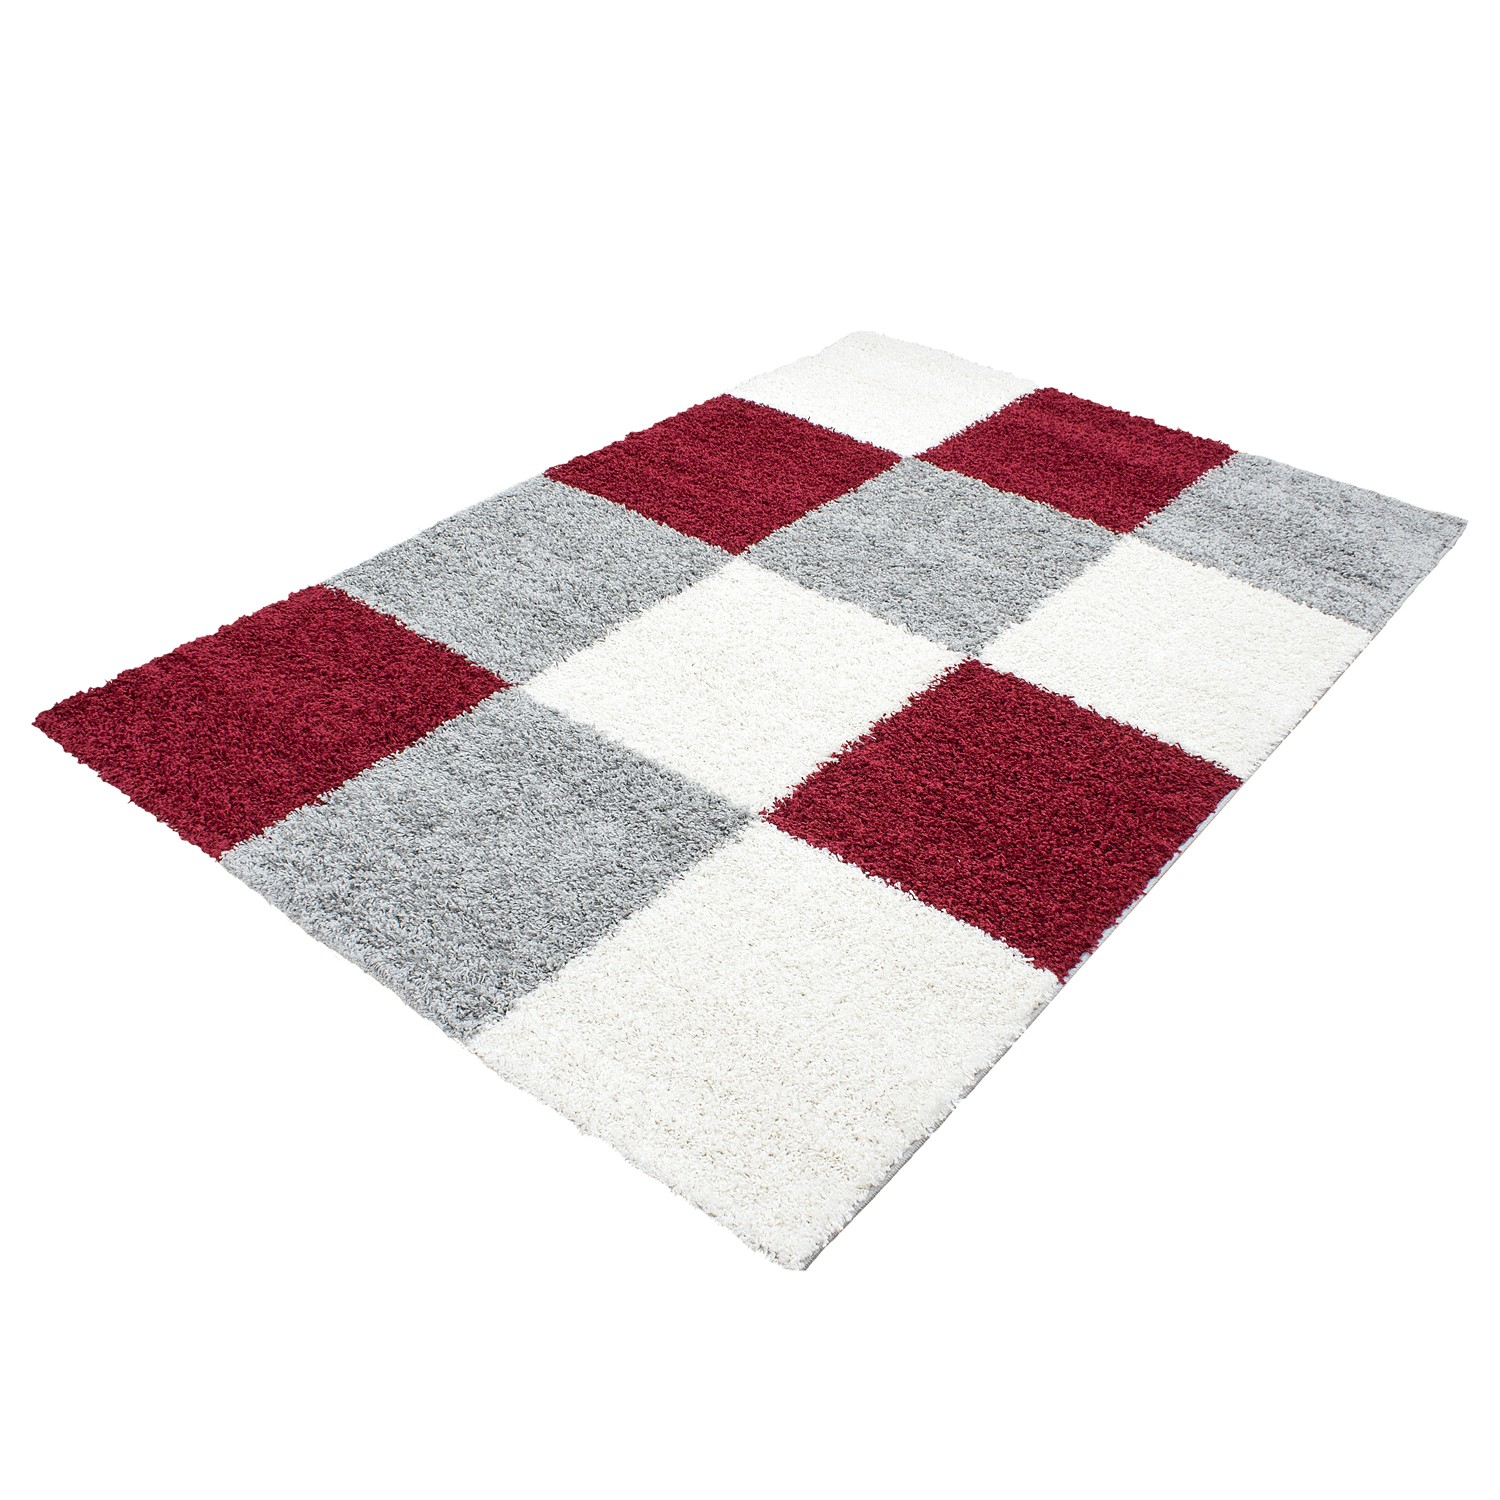 tapis shaggy longues m ches rouge gris cream hautes. Black Bedroom Furniture Sets. Home Design Ideas